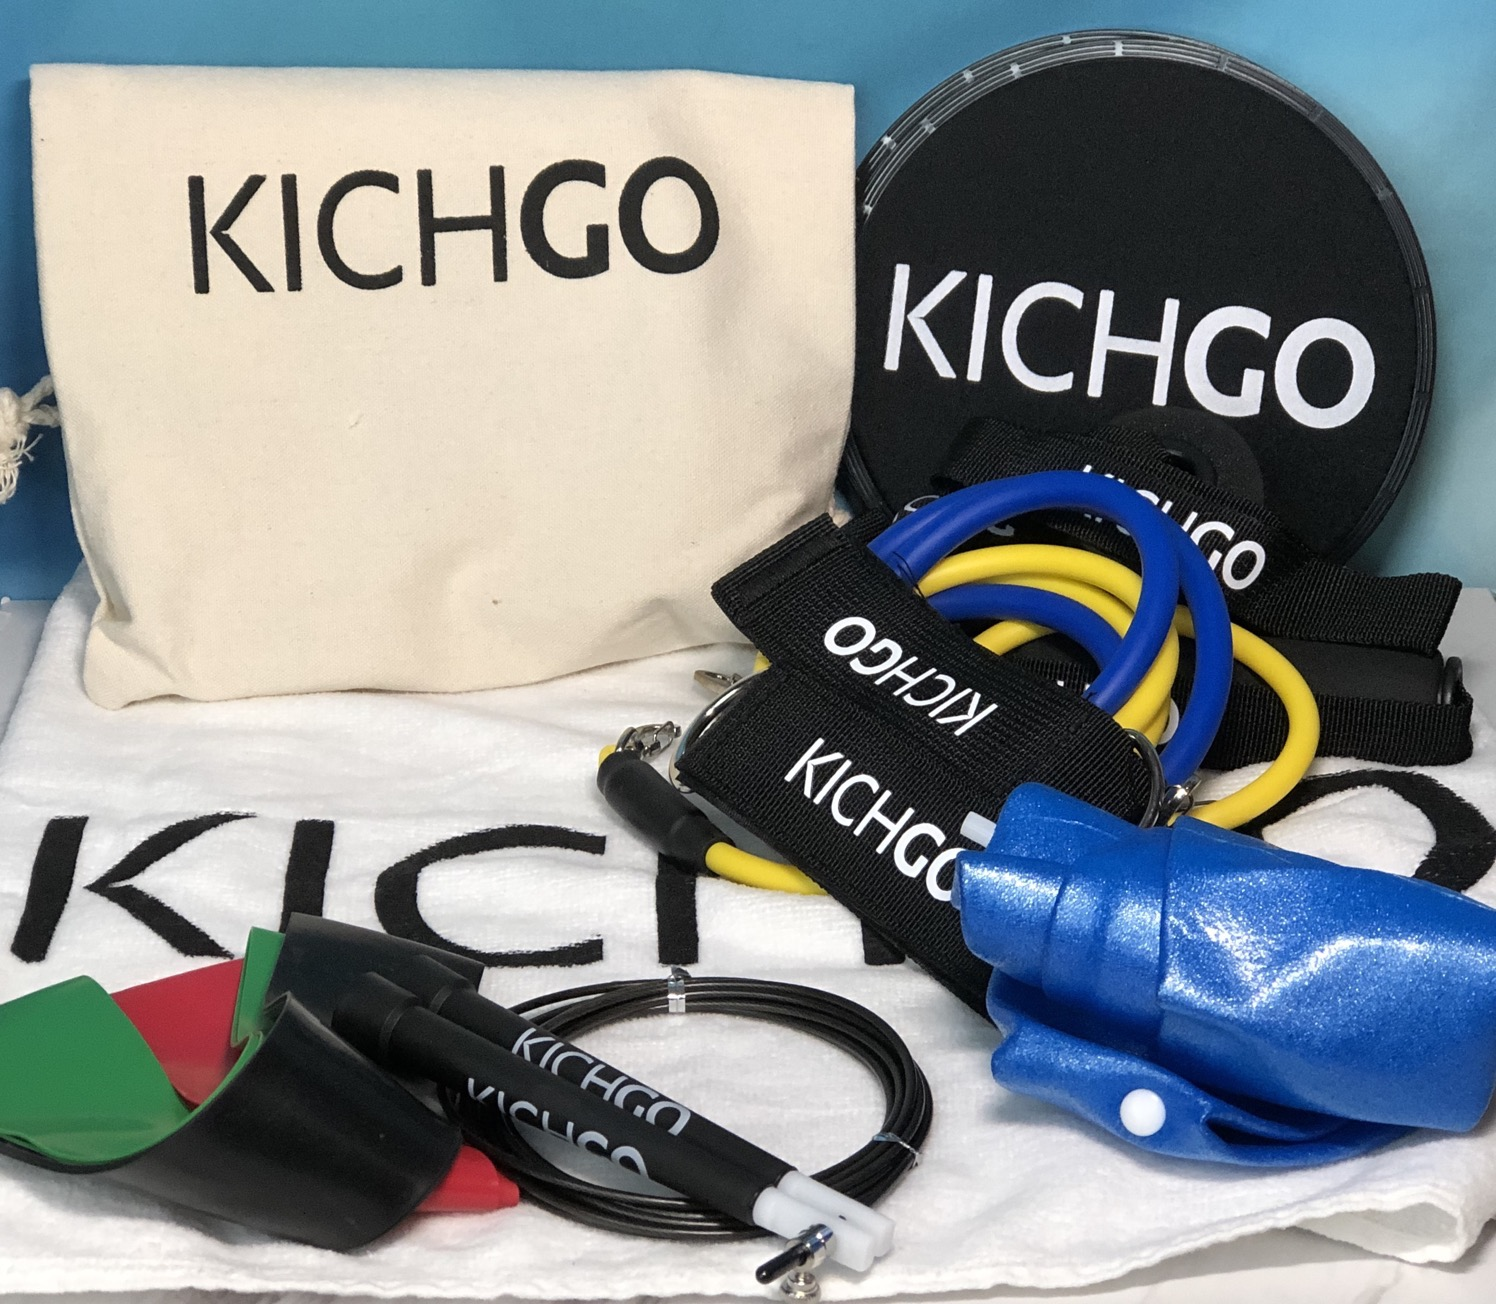 Kichgo a big gym in a little bag